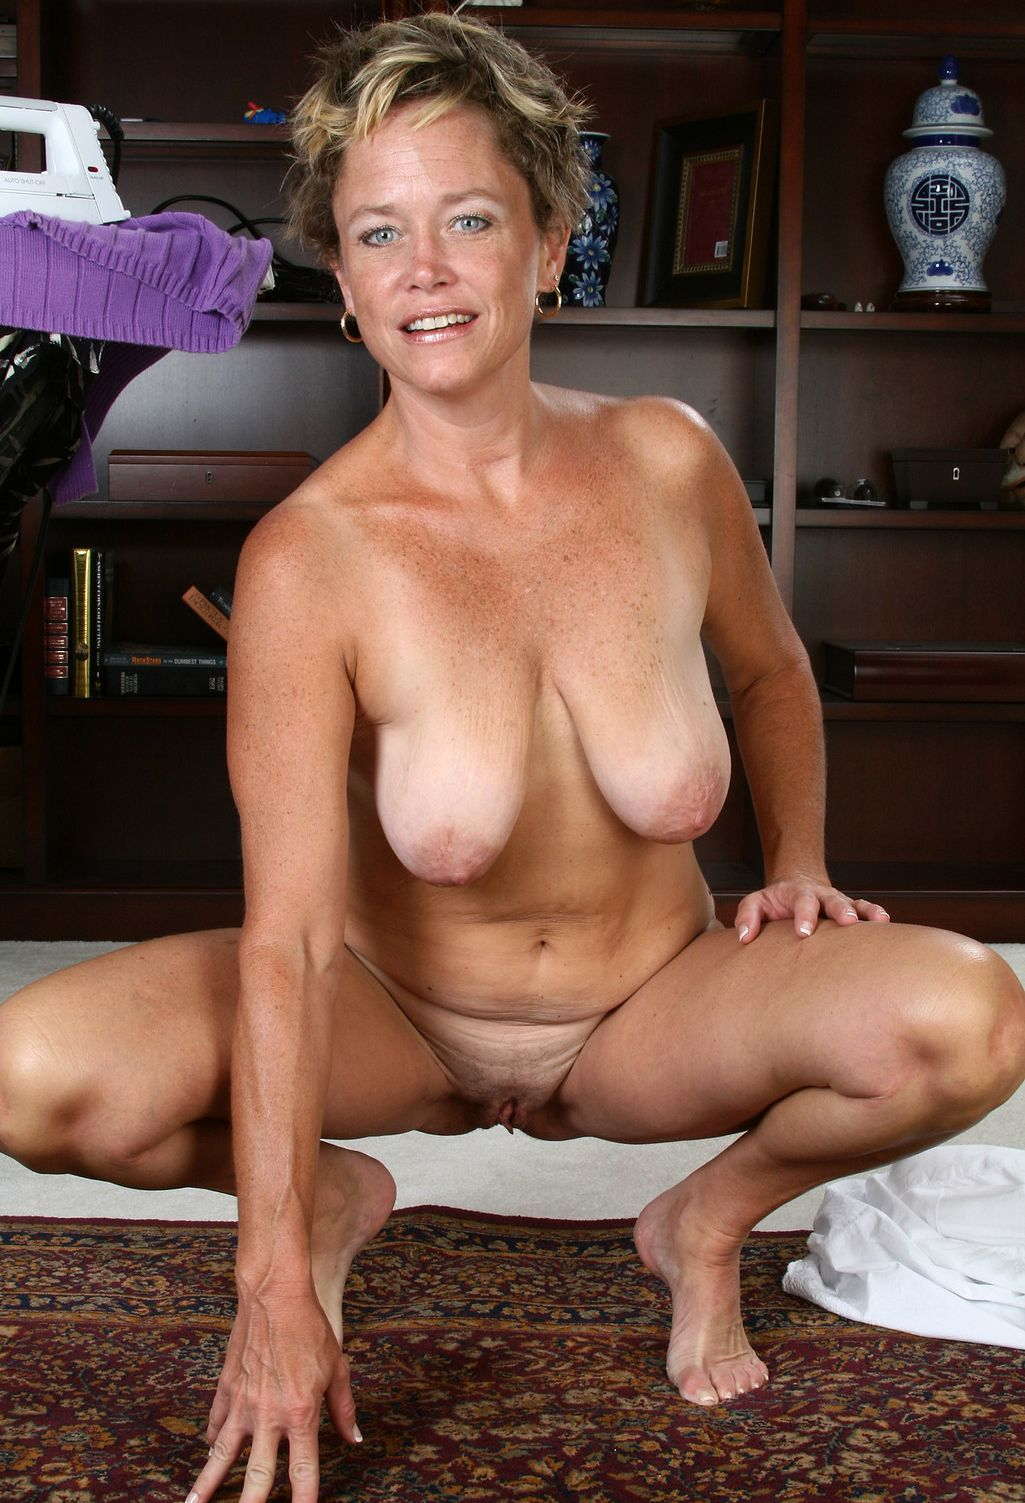 Full frontal nudity mature women